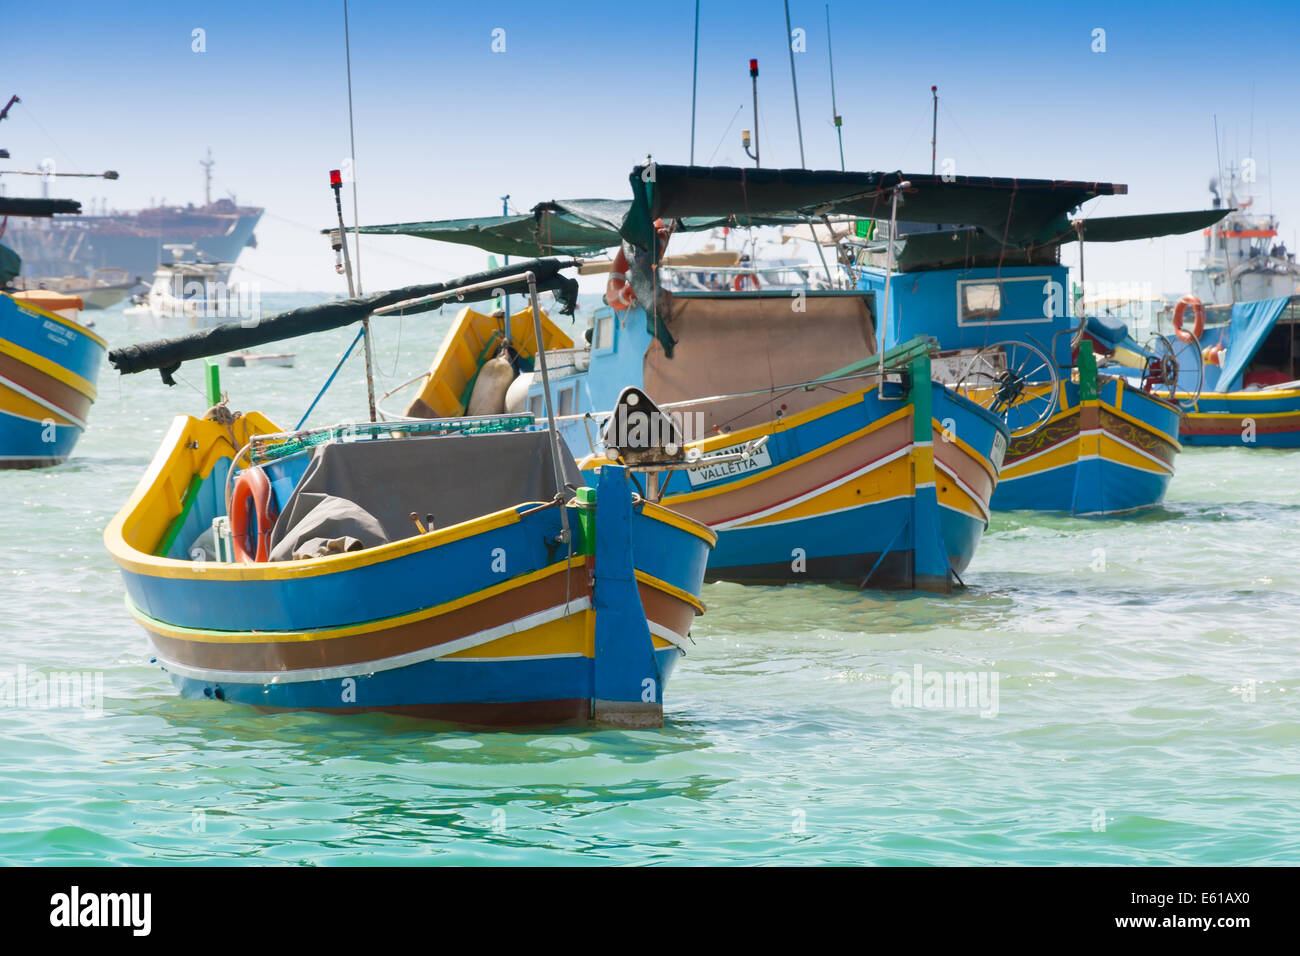 Traditional fishing boat (luzzu) in Marsaxlokk, a fishing village located in the south-eastern part of Malta. - Stock Image